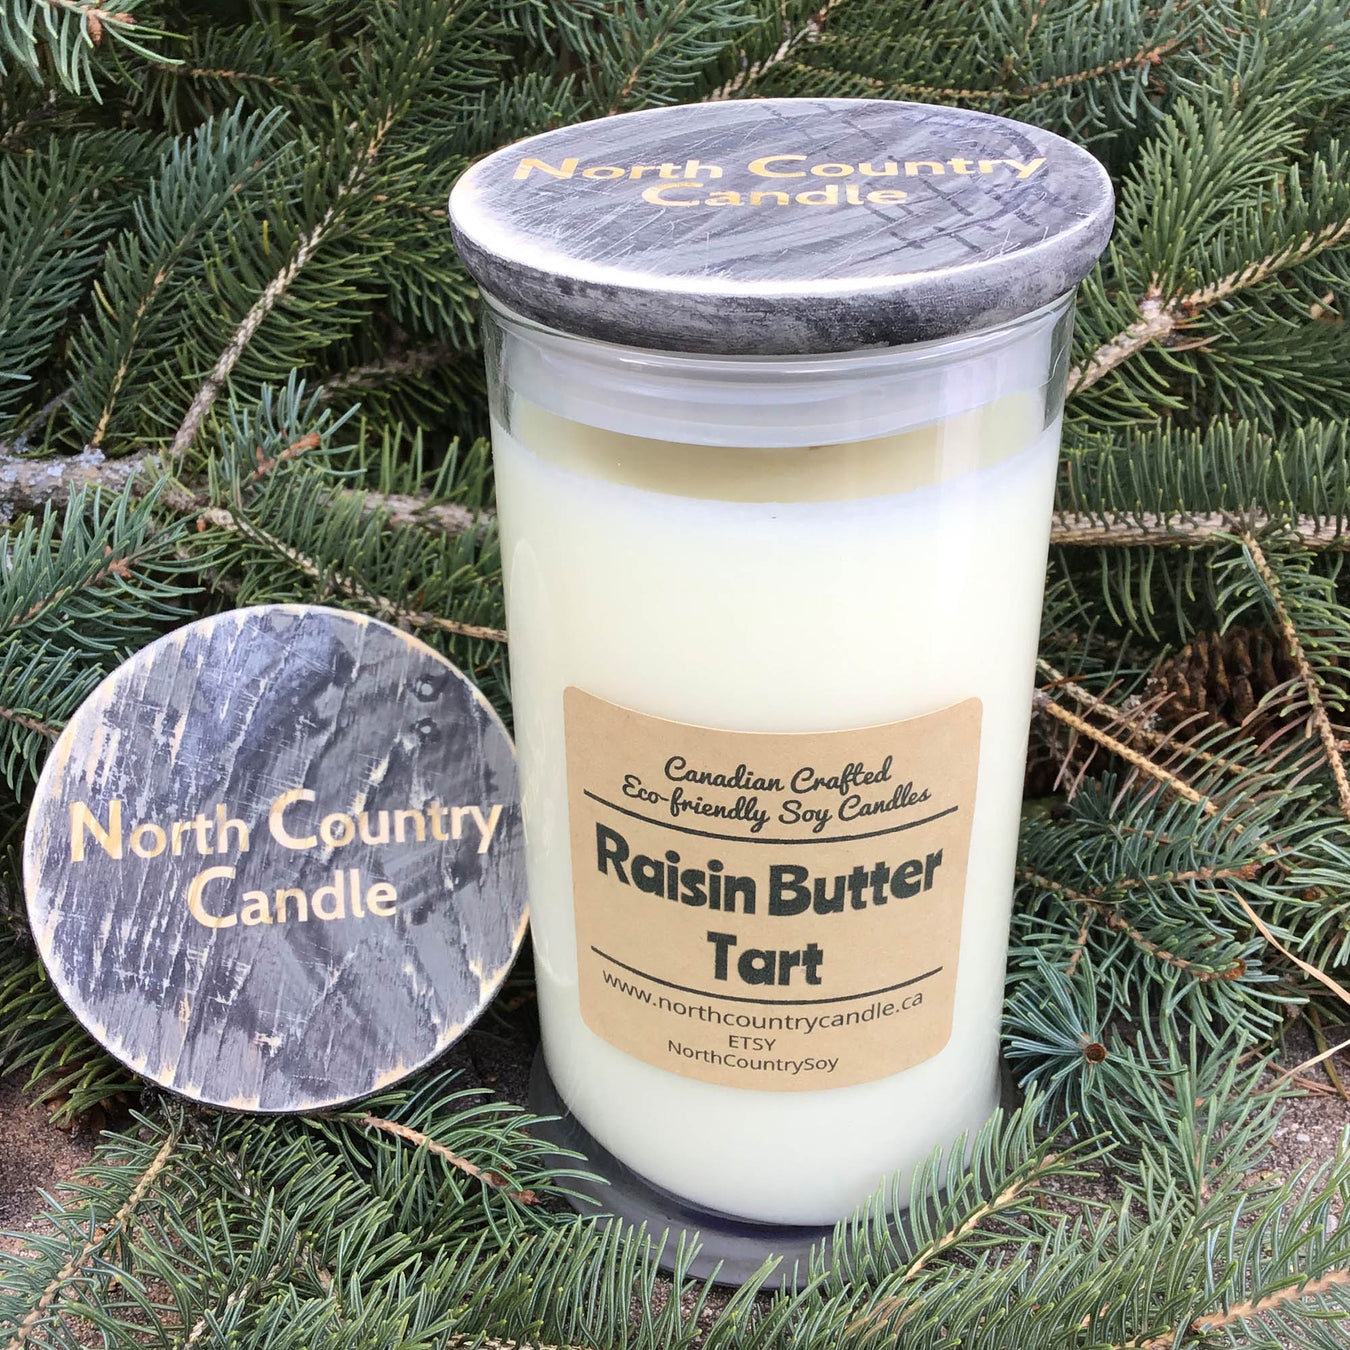 North Country Candle | Artfest Ontario